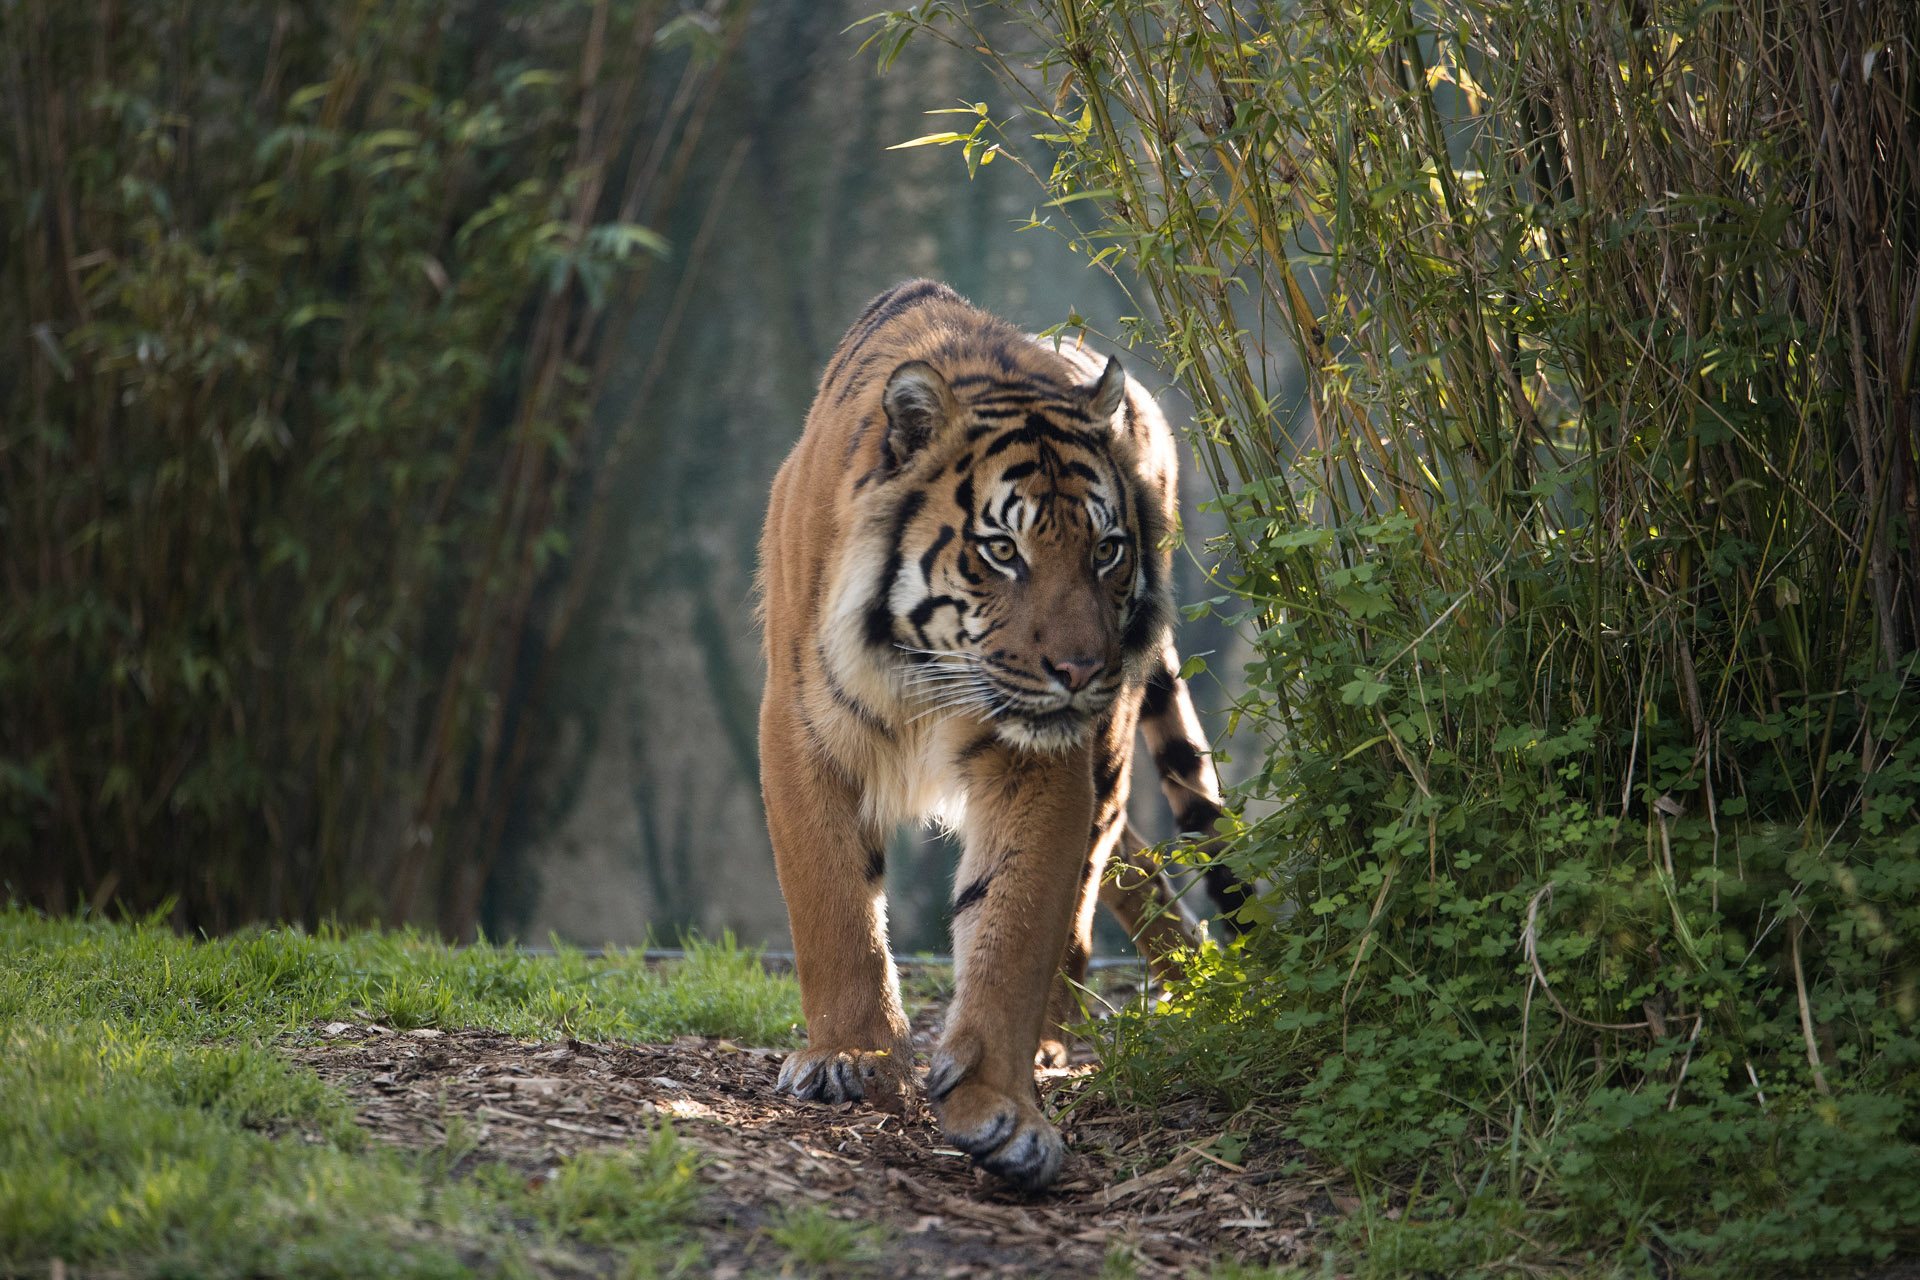 Sumatran Tiger Image 3, Alex Cearns_0